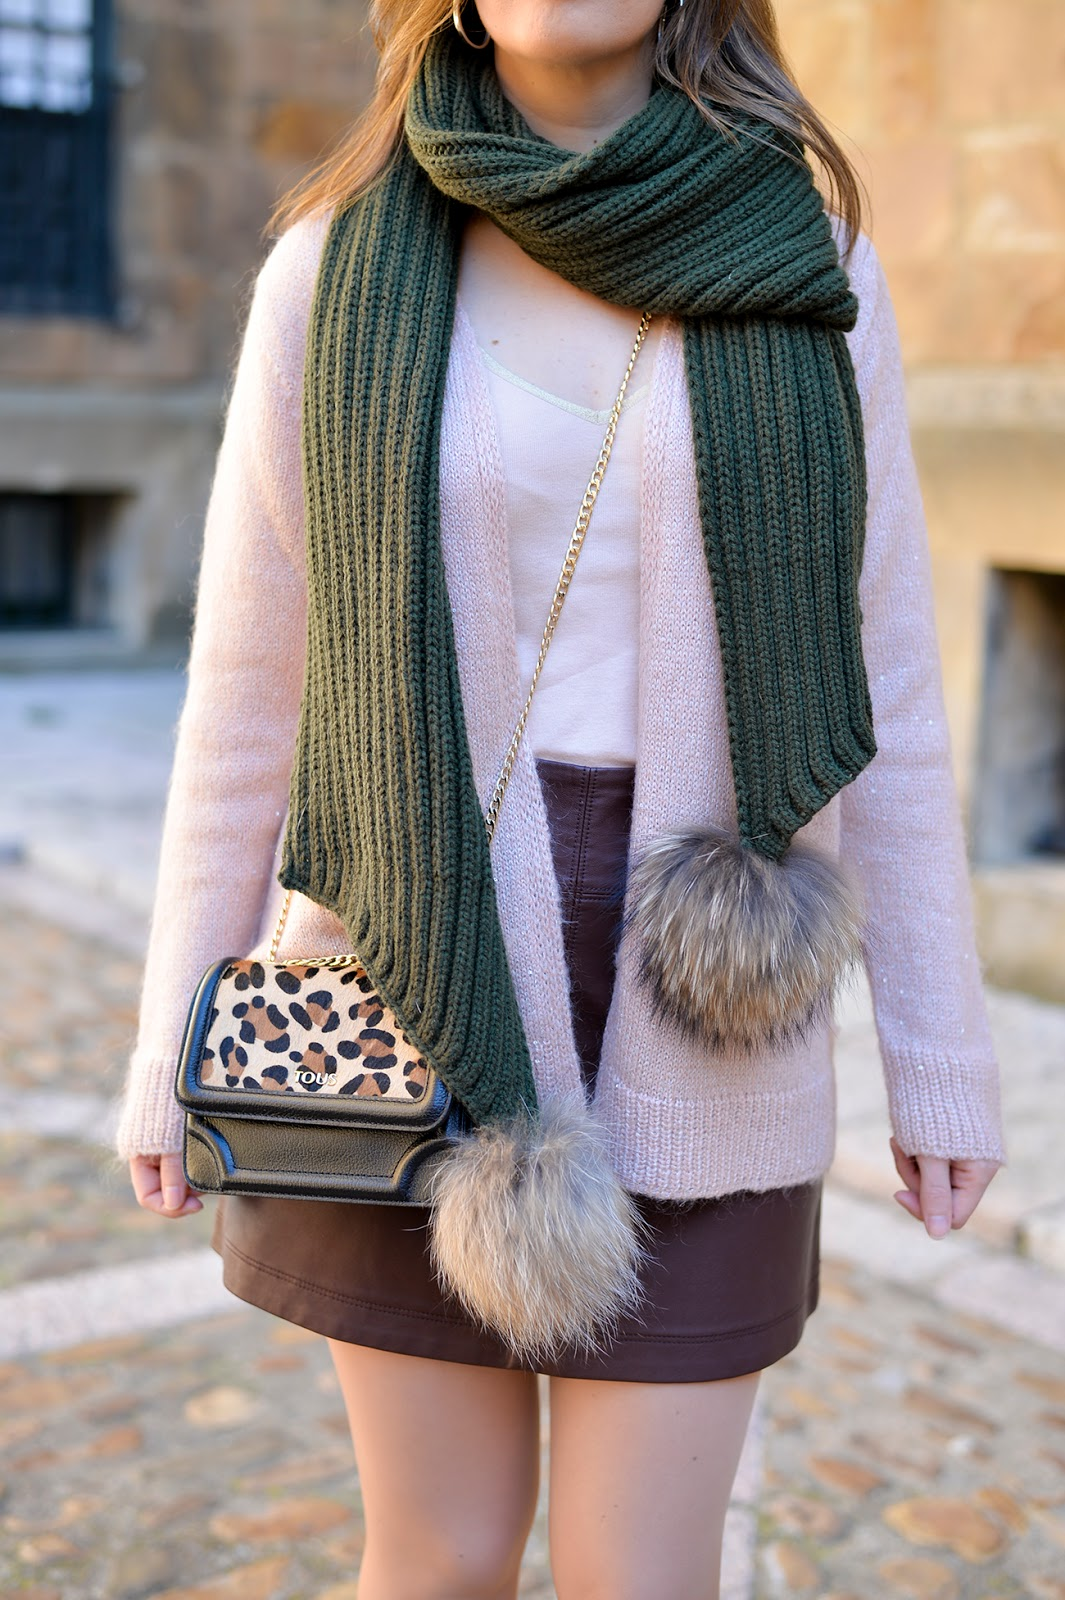 Pom-pom Scarf & Neutral Tones fashion blogger